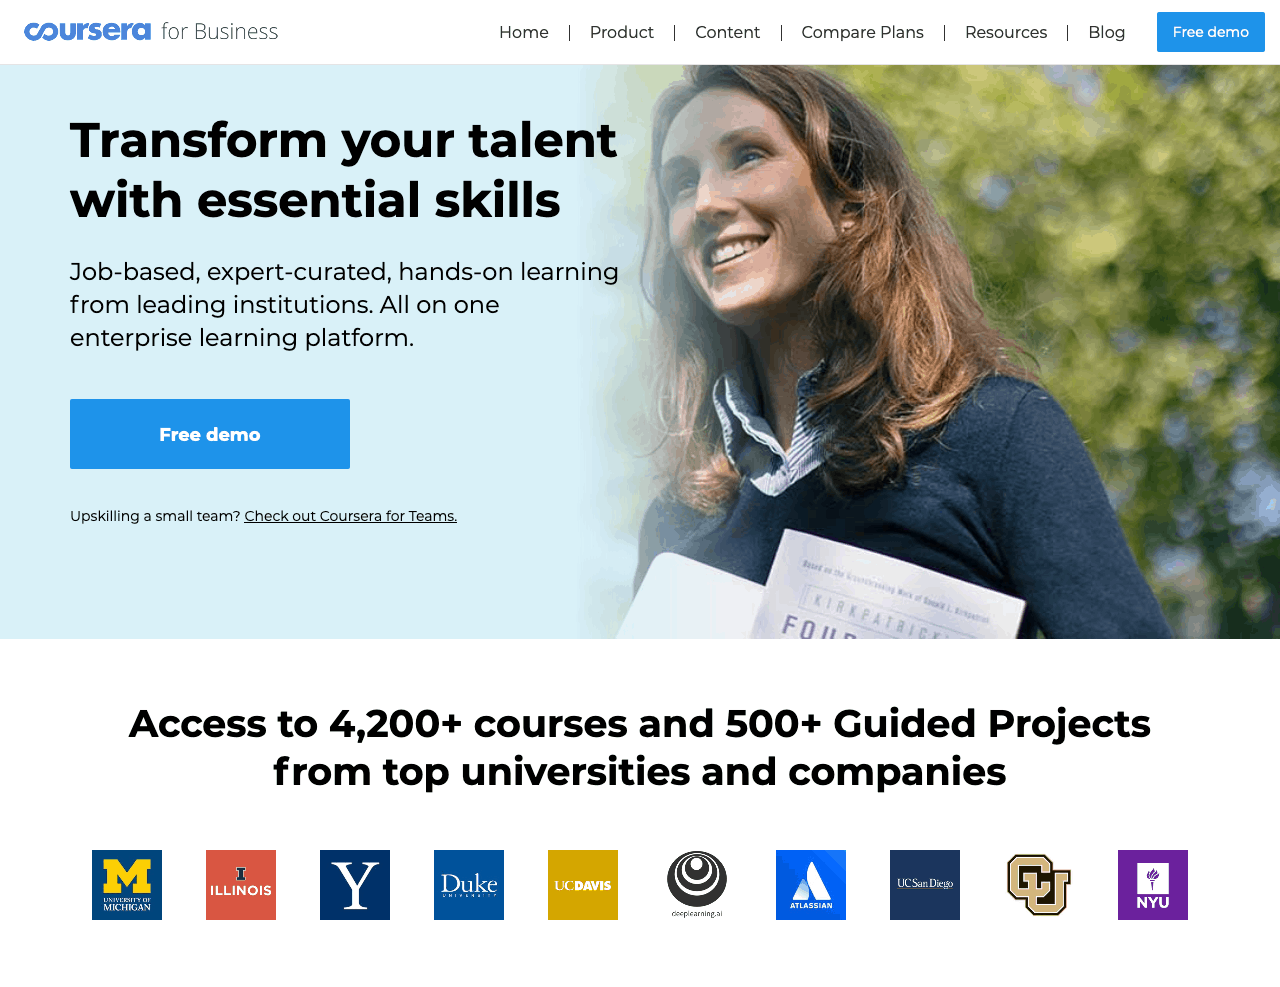 Coursera for Business landing page screenshot